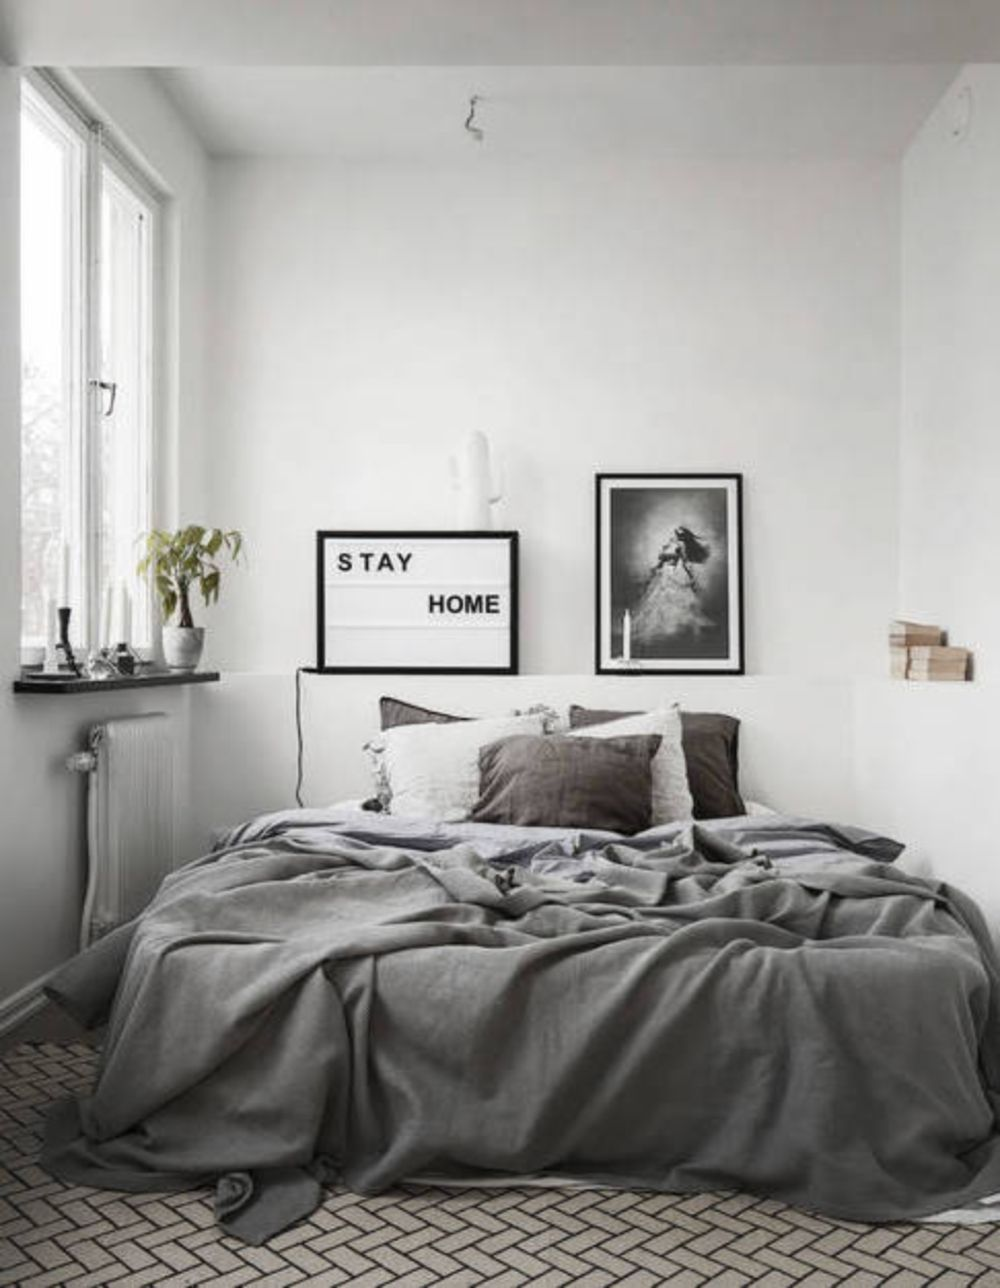 Cool 50 Mind Blowing Minimalist Bedroom Color Inspiration  Https://homedecort.com/2017/06/50 Mind Blowing Minimalist Bedroom Color  Inspiration/